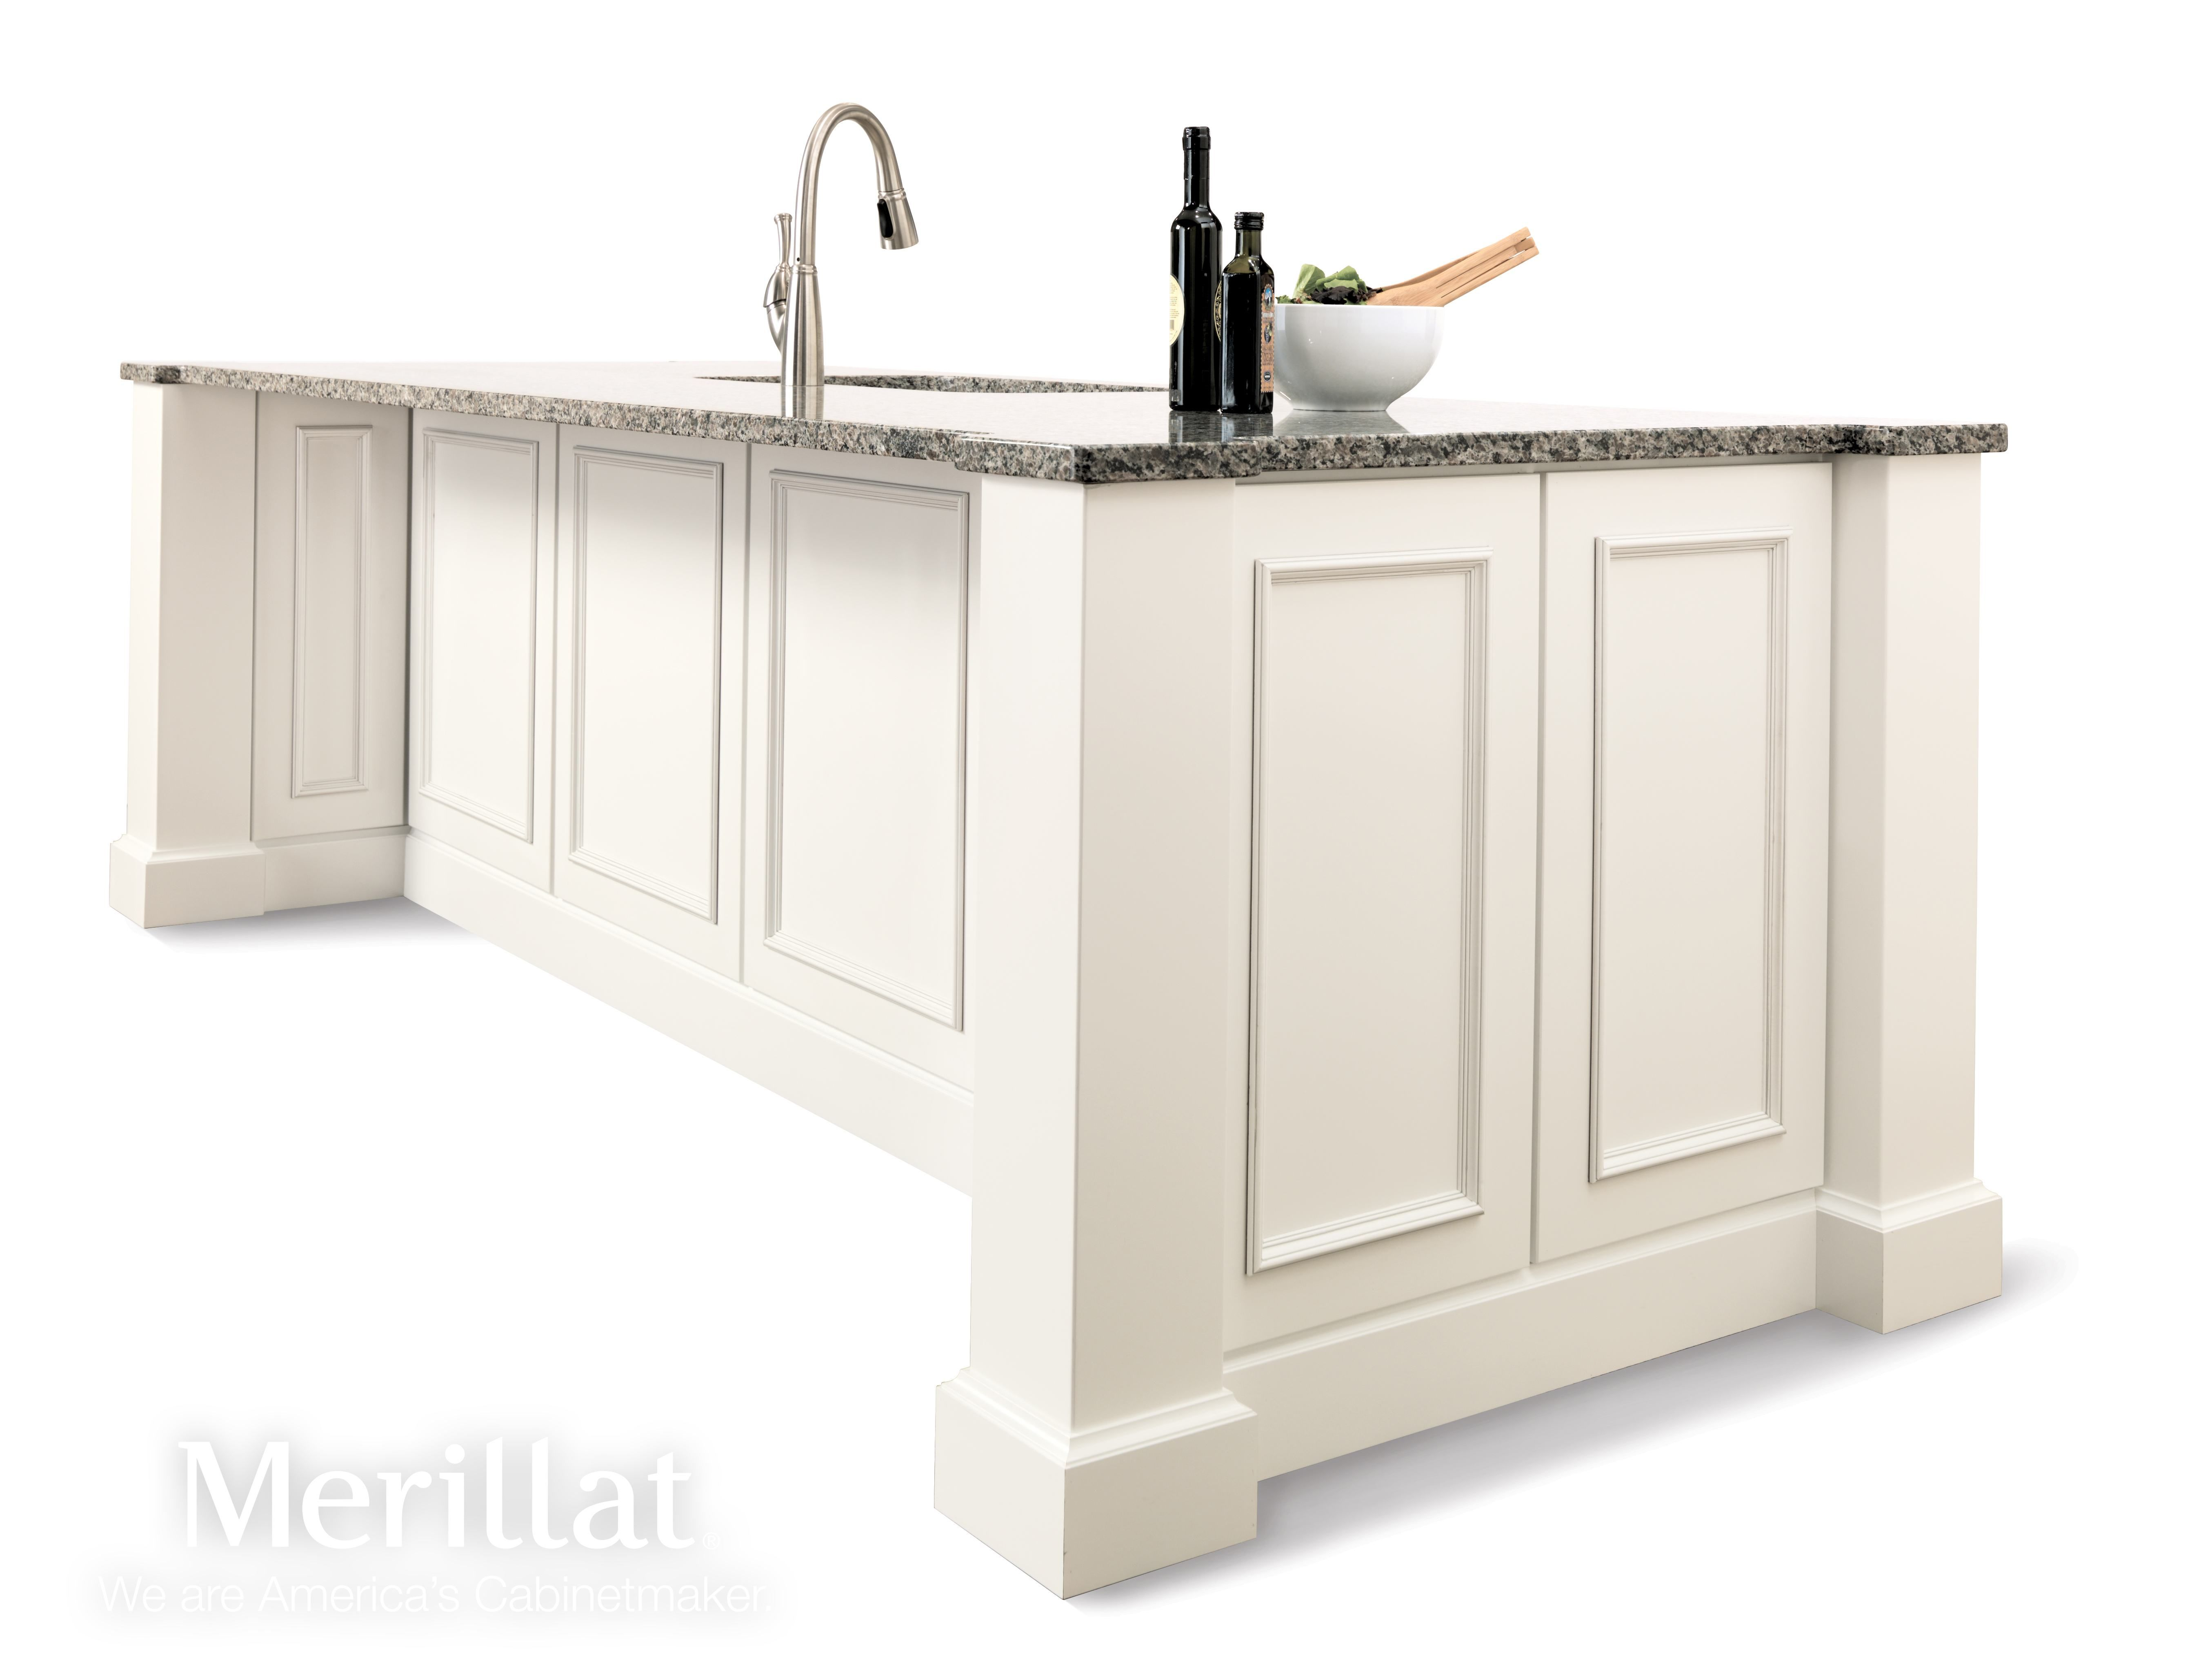 merillat classic cannonsburg maple cotton with tuscan glaze merillat cabinetry kitchen island - Merillat Classic Kitchen Cabinets